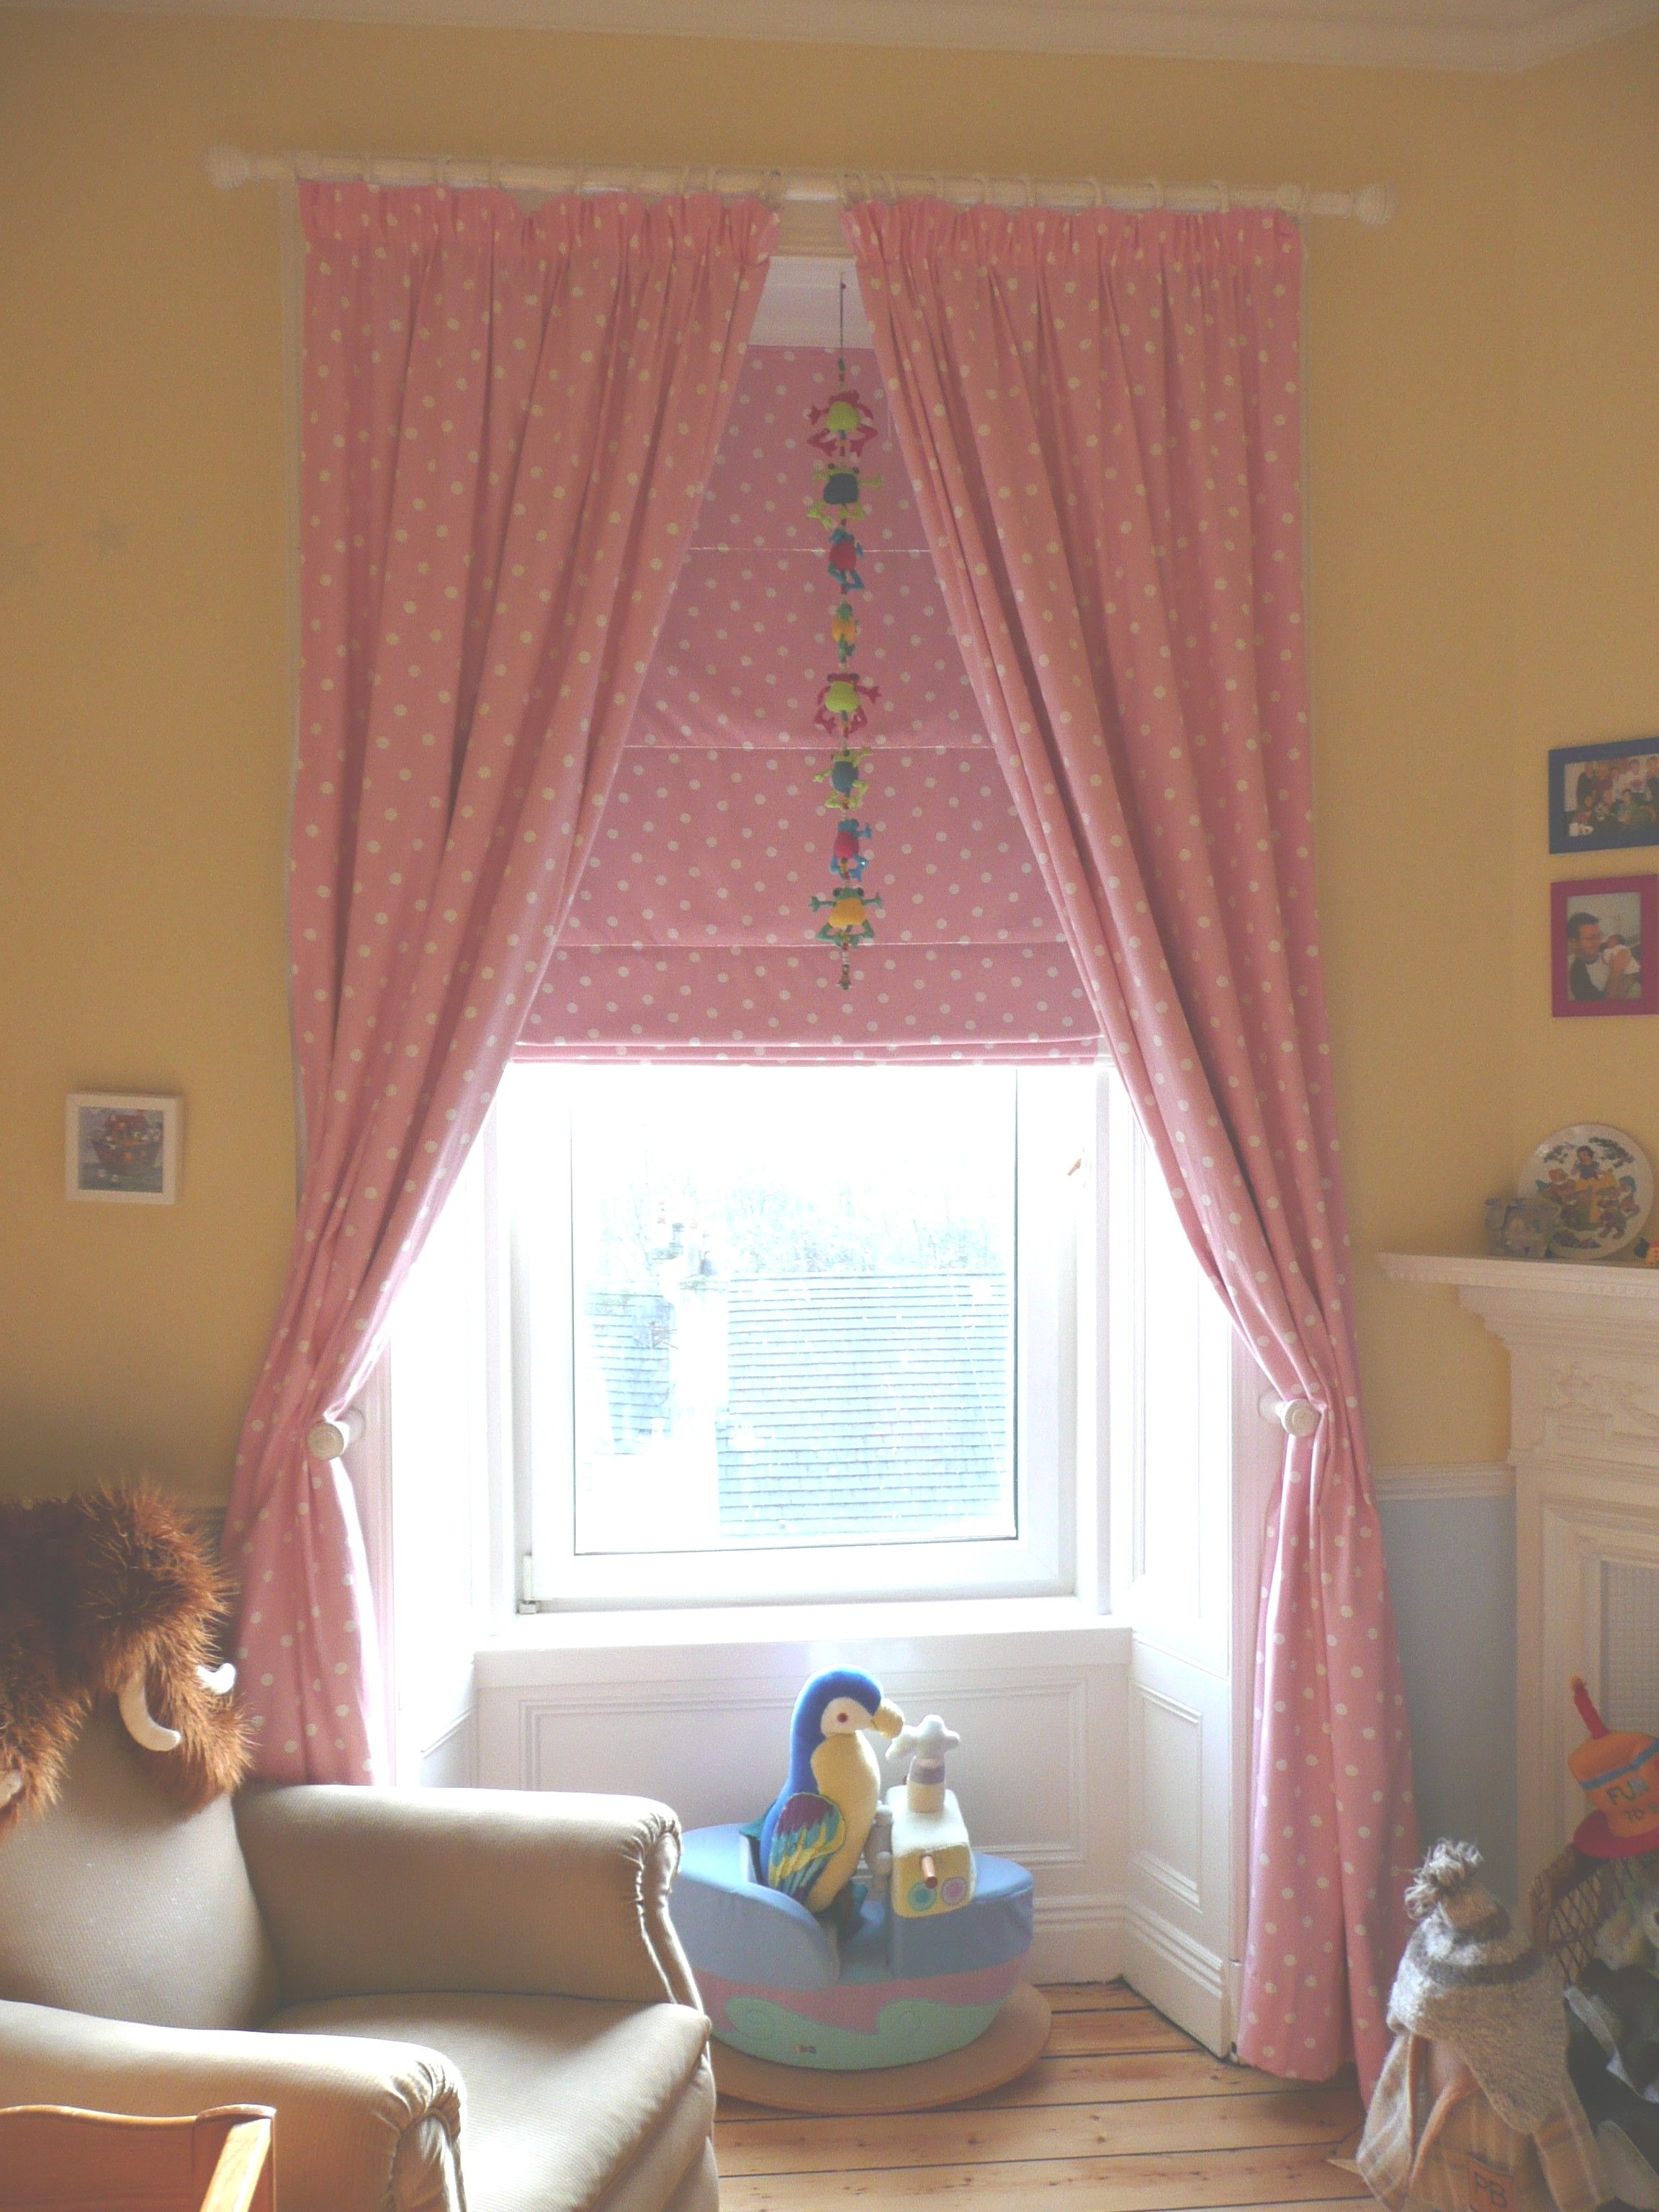 Nursery Curtains U0026 Roman Blind, With The Roman Blind In Aqua And The  Curtains In